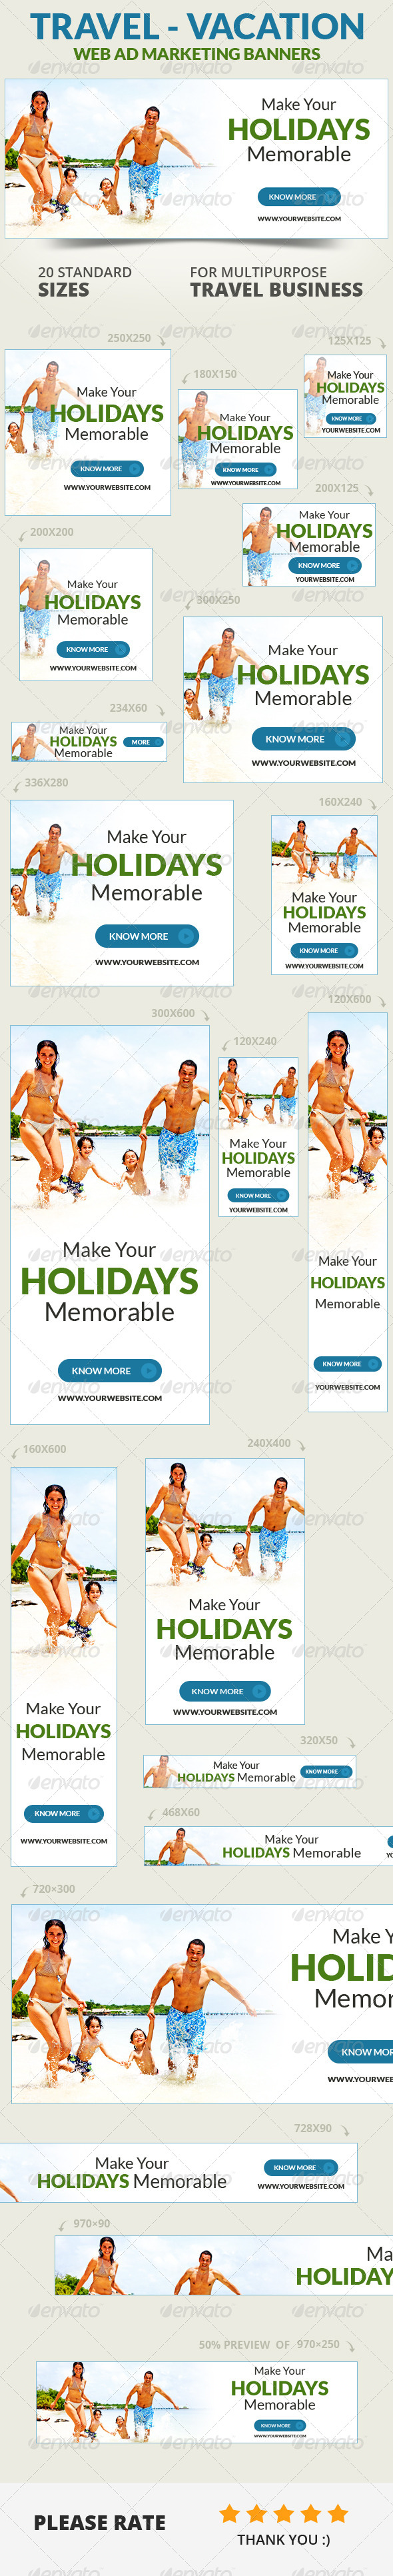 Travel Vacation Web Ad Marketing Banners Vol 2